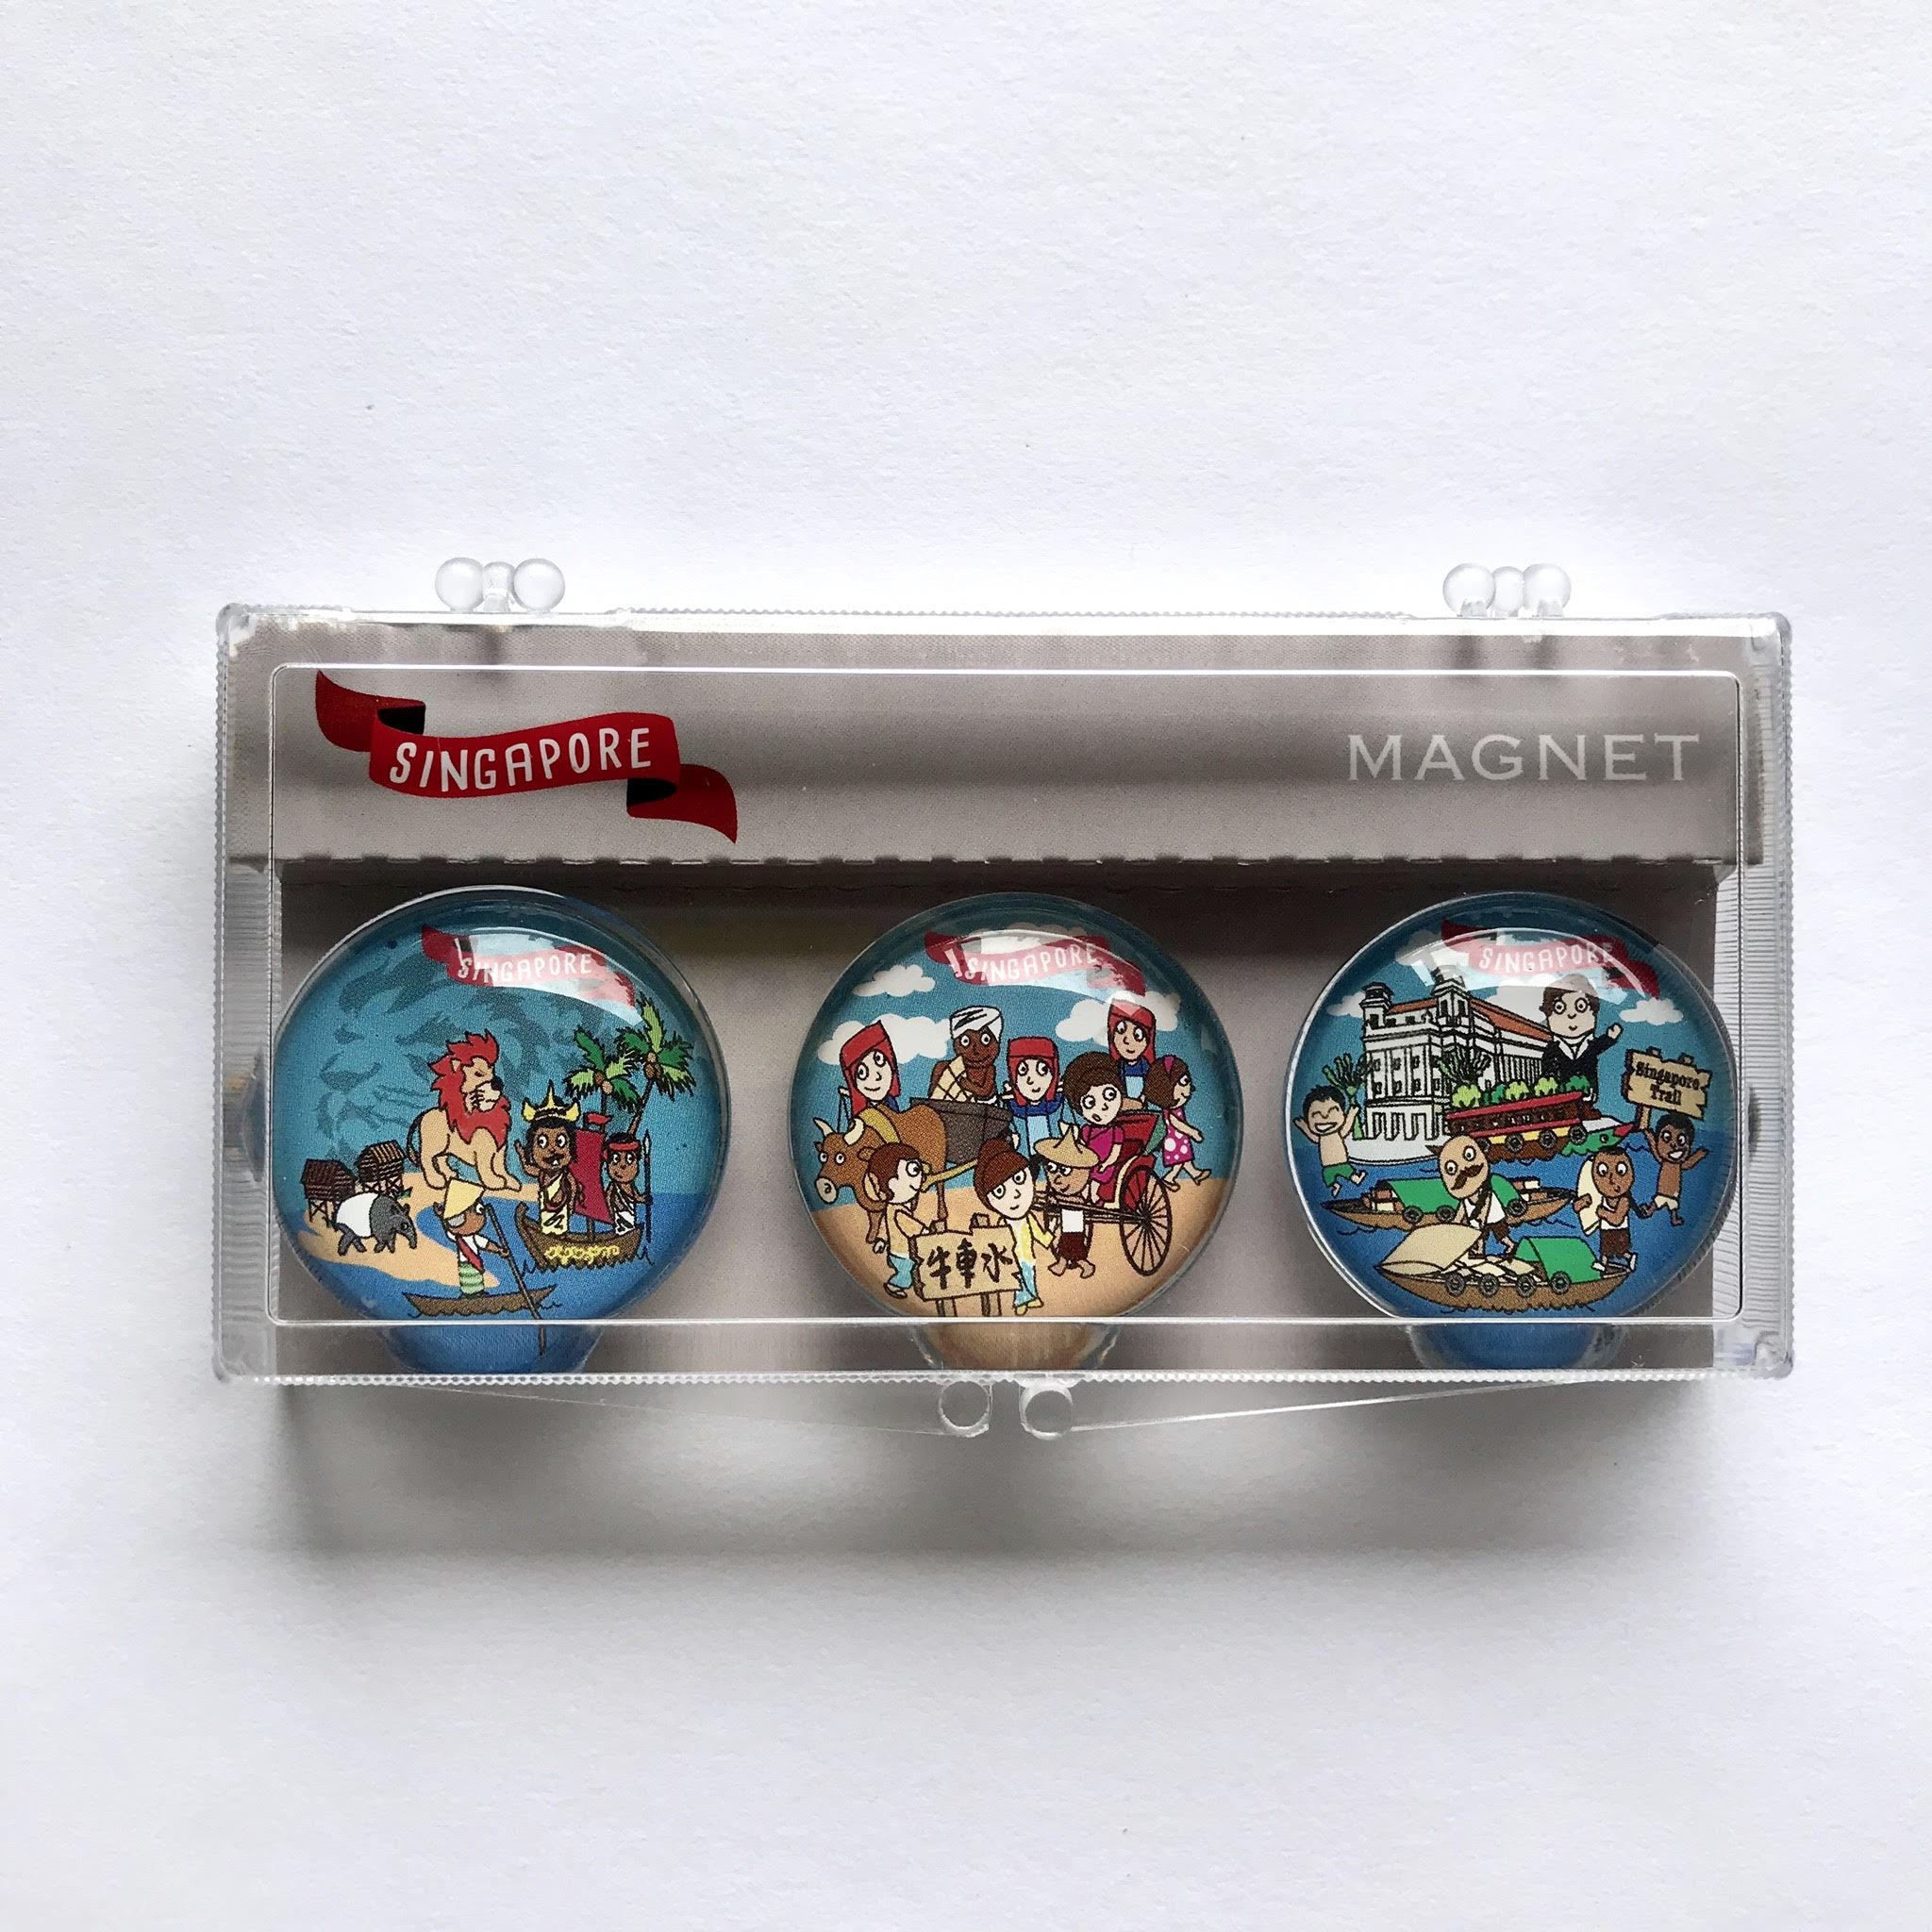 SG Magnet: Heritage - Local Magnets - Little Red Box - Naiise